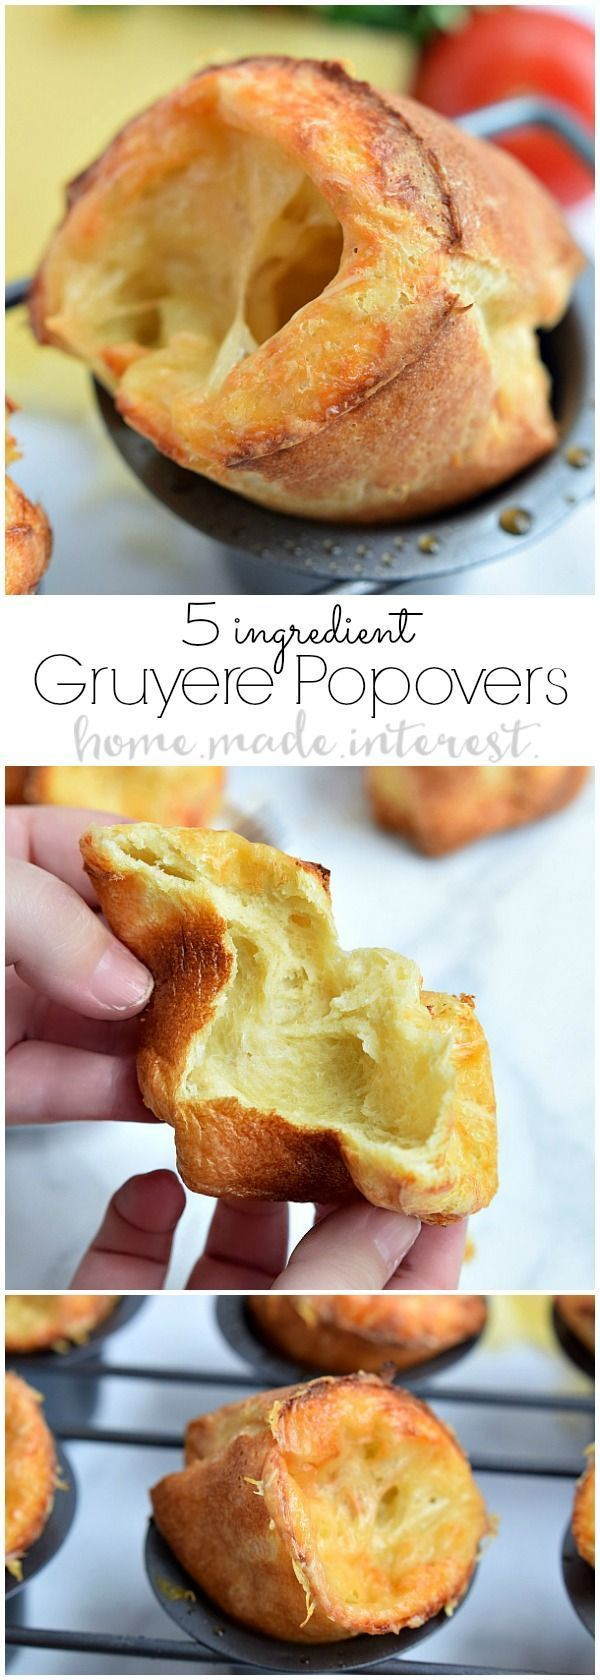 These easy Gruyere Popovers are a fluffy, cheesy popover recipe that would be the perfect bread to make for Thankgiving dinner or Christmas dinner! Popovers are actually a really easy bread recipe that always impresses guests! Make this bread for your nex